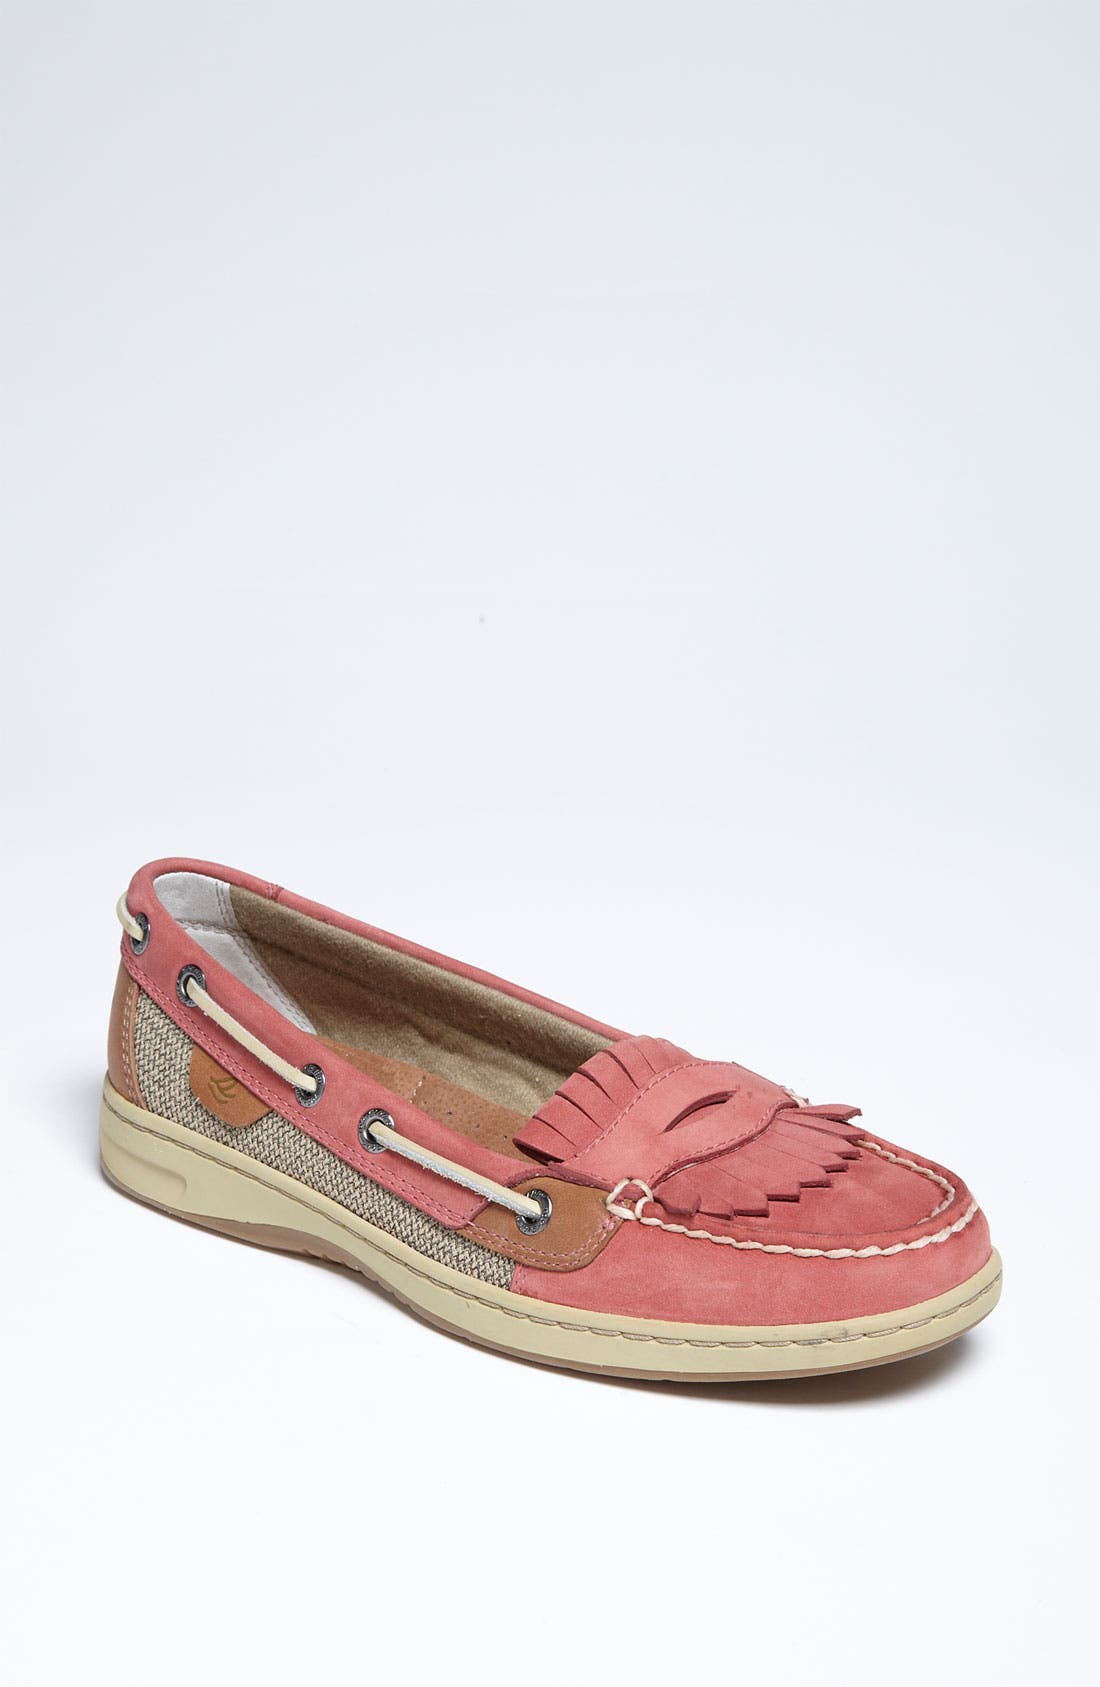 Alternate Image 1 Selected - Sperry Top-Sider® 'Pearlfish' Boat Shoe (Nordstrom Exclusive)